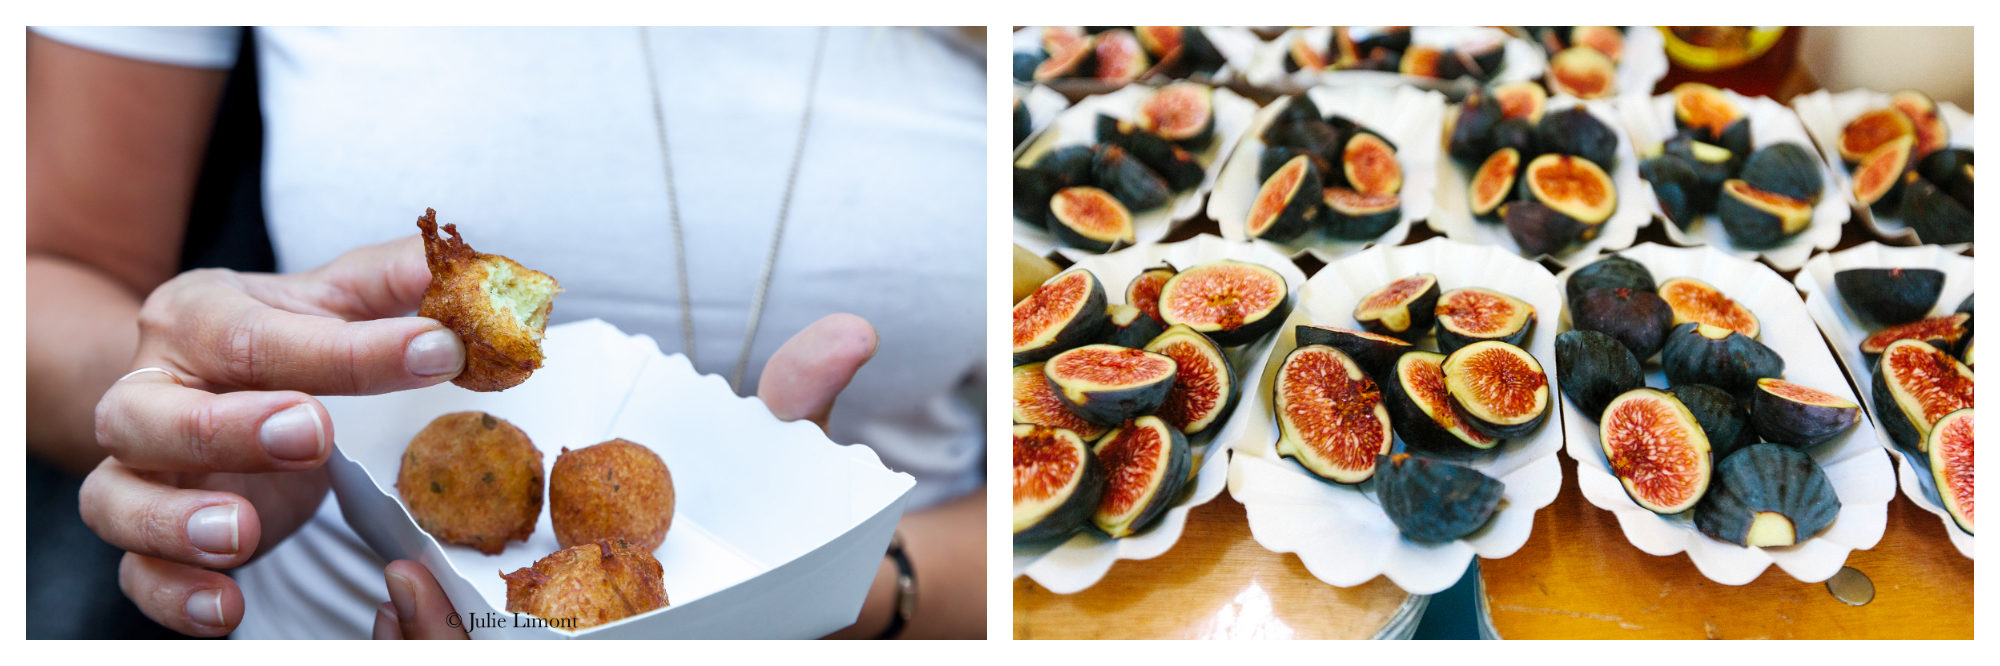 A woman tasting accras (left) and fresh figs (right) and Le Food Market in Paris.